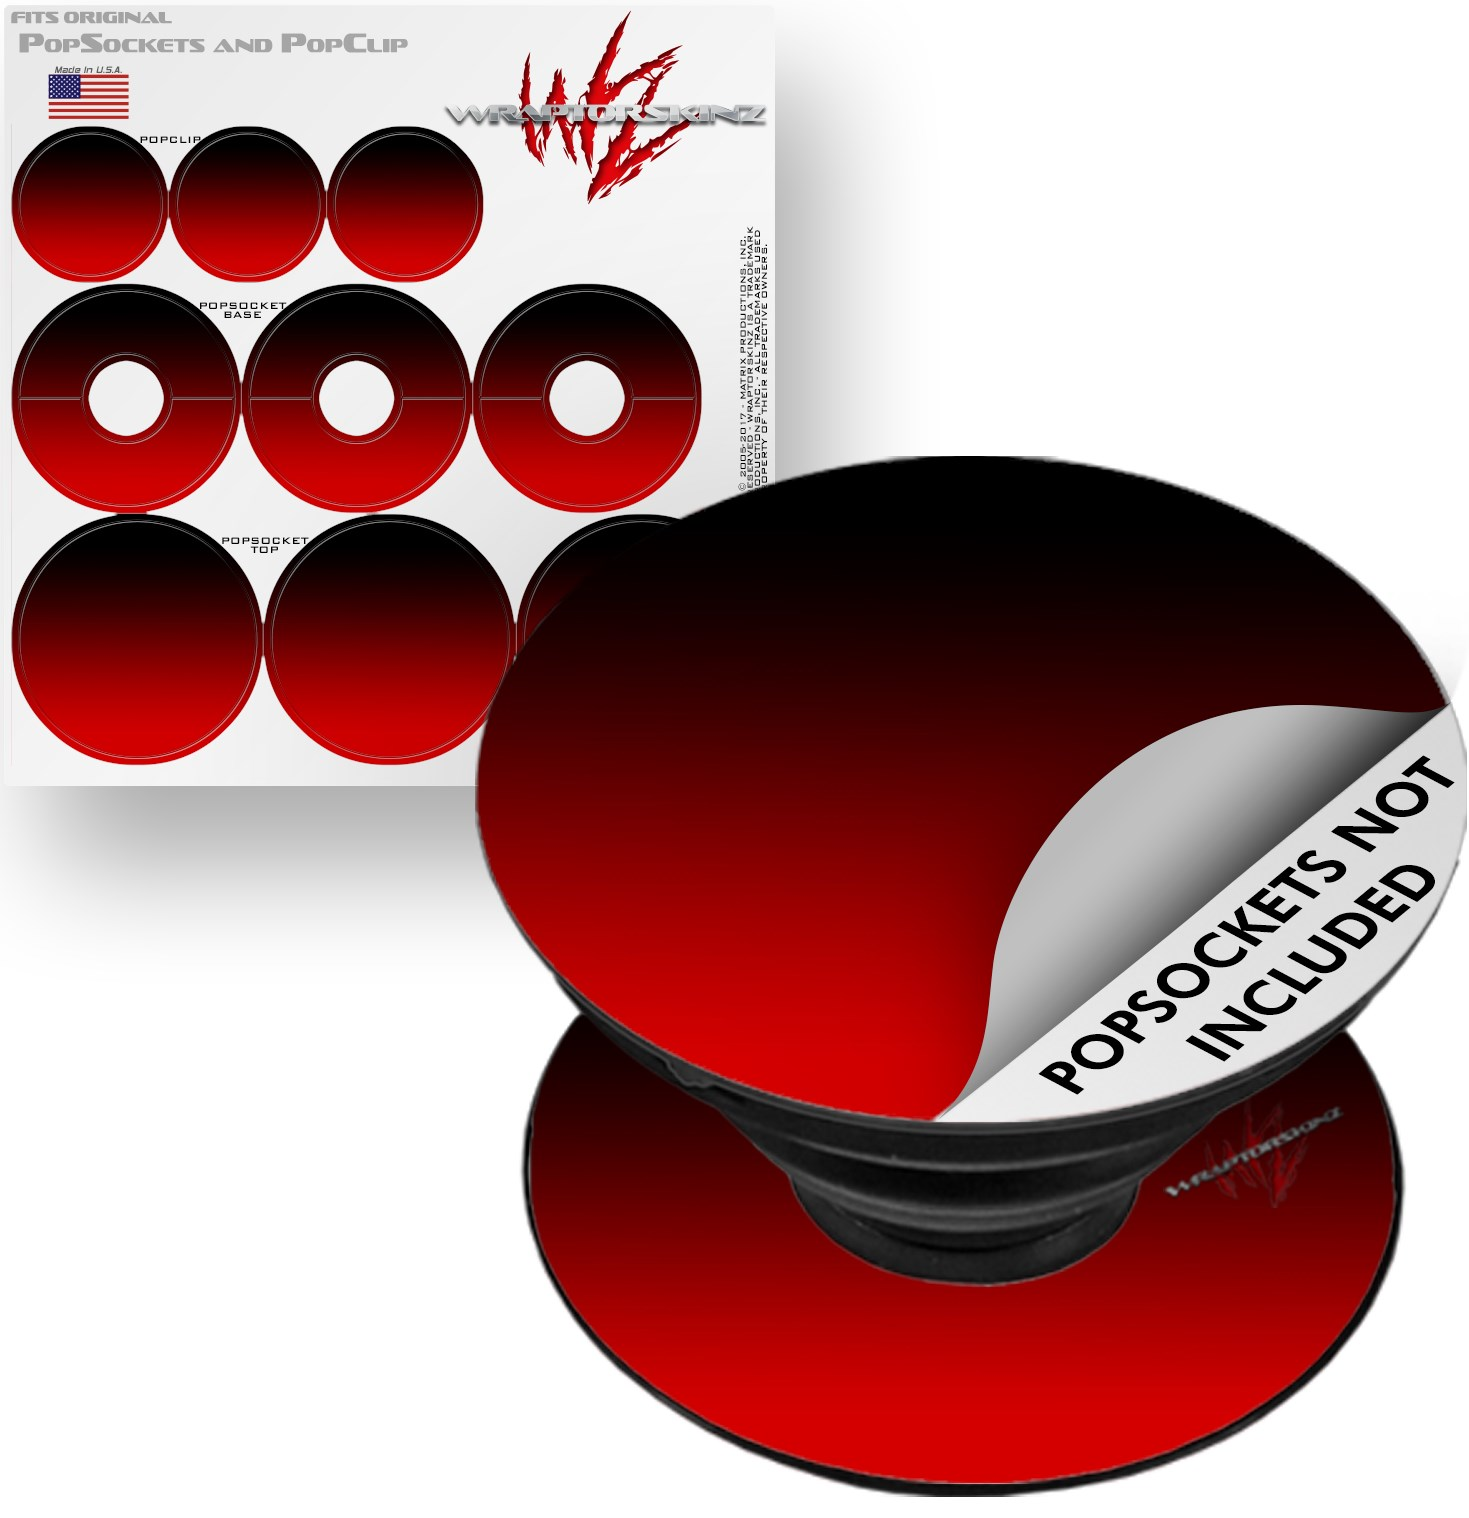 Decal Style Vinyl Skin Wrap 3 Pack for PopSockets Smooth Fades Red Black (POPSOCKET NOT INCLUDED) by WraptorSkinz